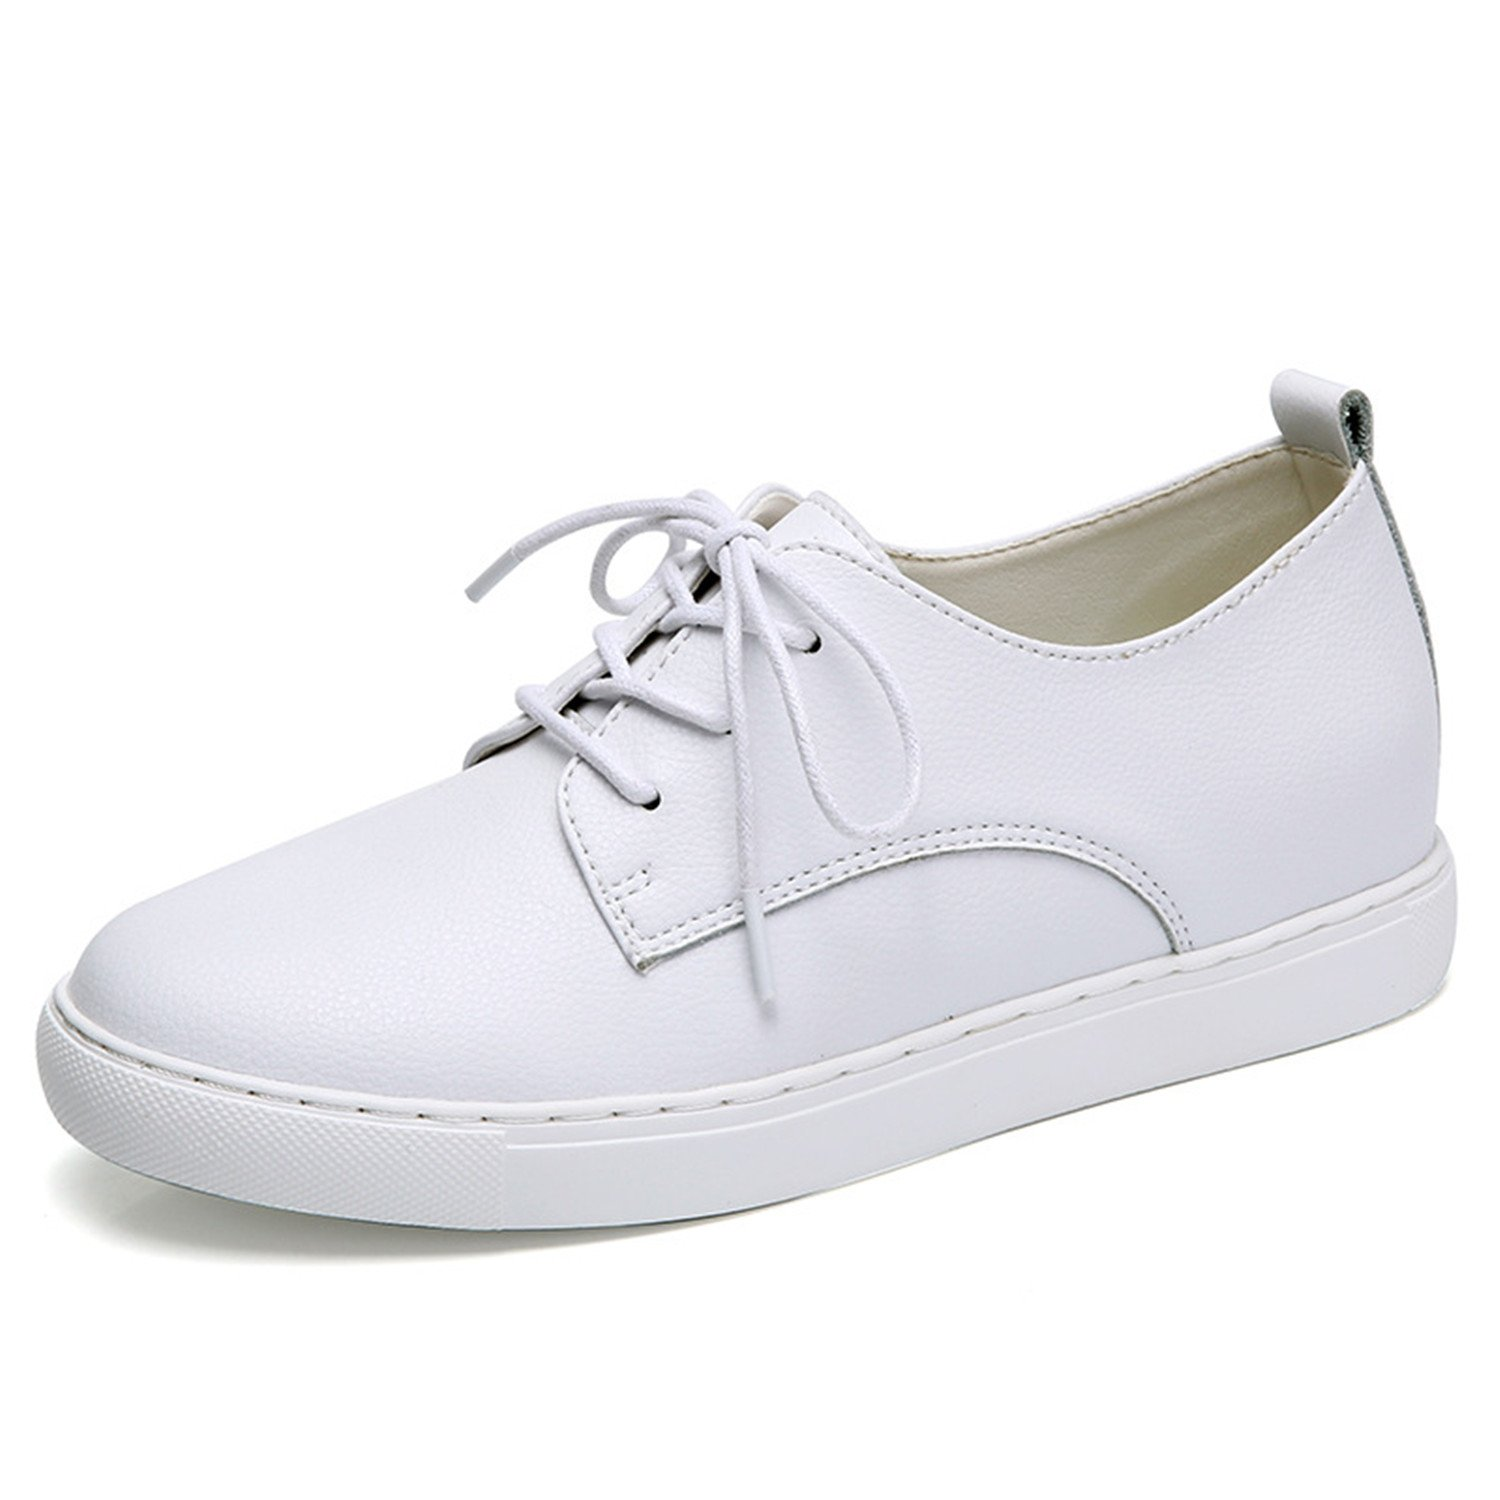 Doris Batchelor Woman Genuine Leather Lace up Sneaker Increased Internal Flats